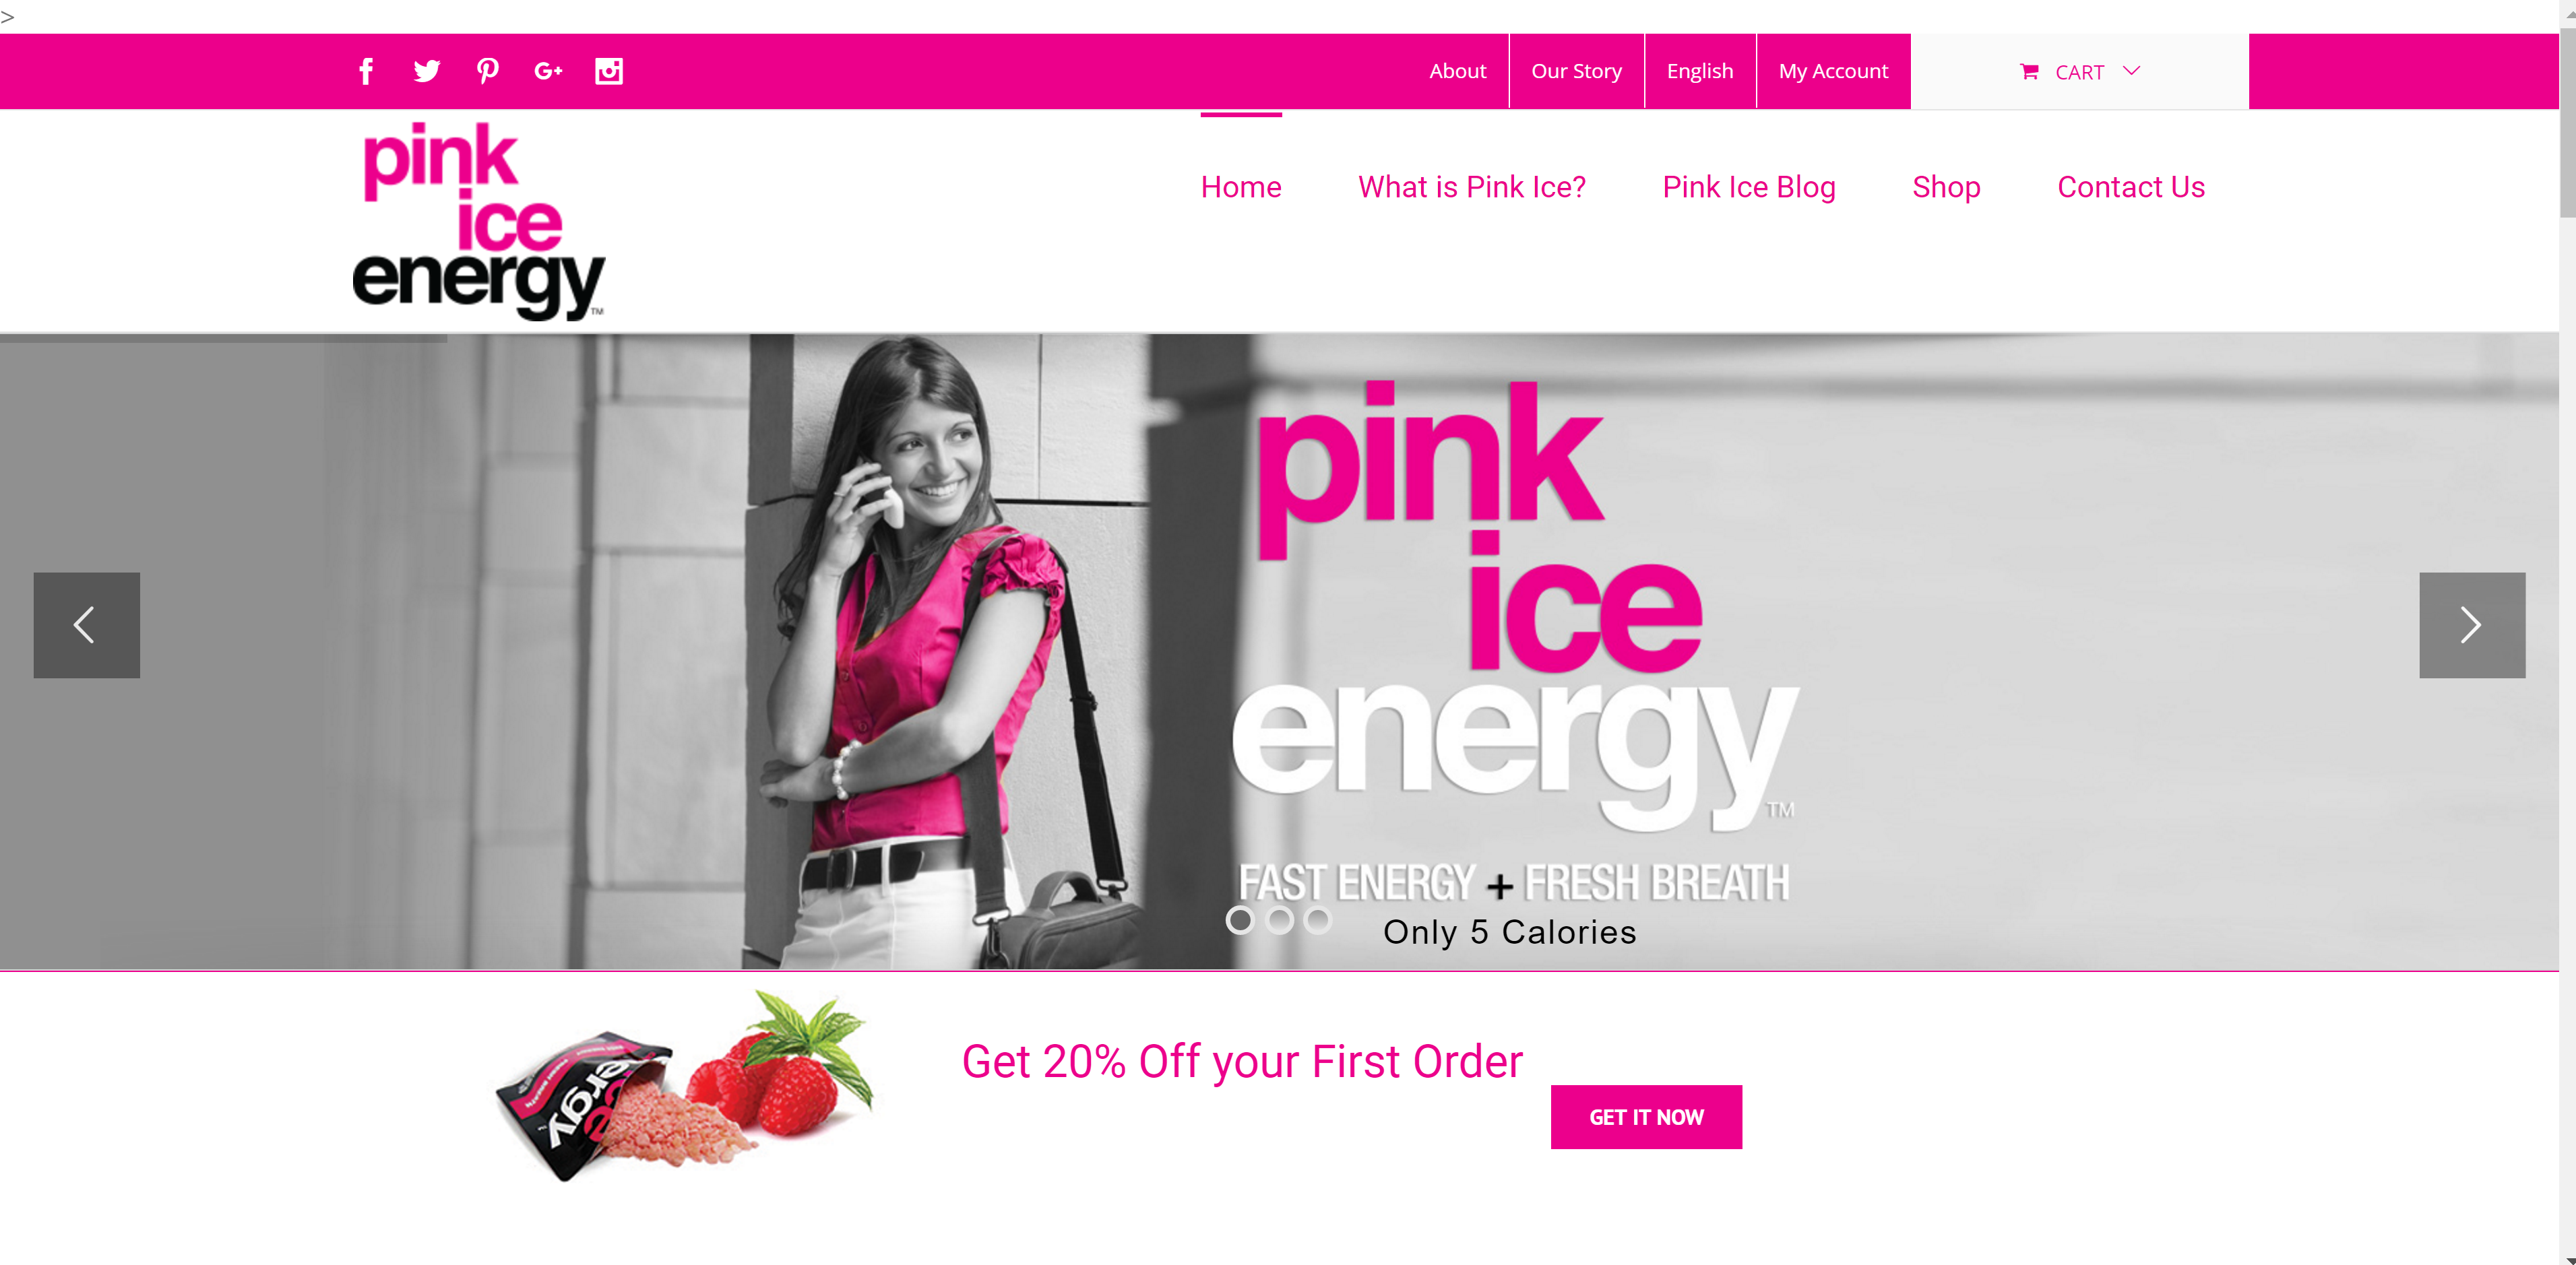 pink-ice-energy-page-1